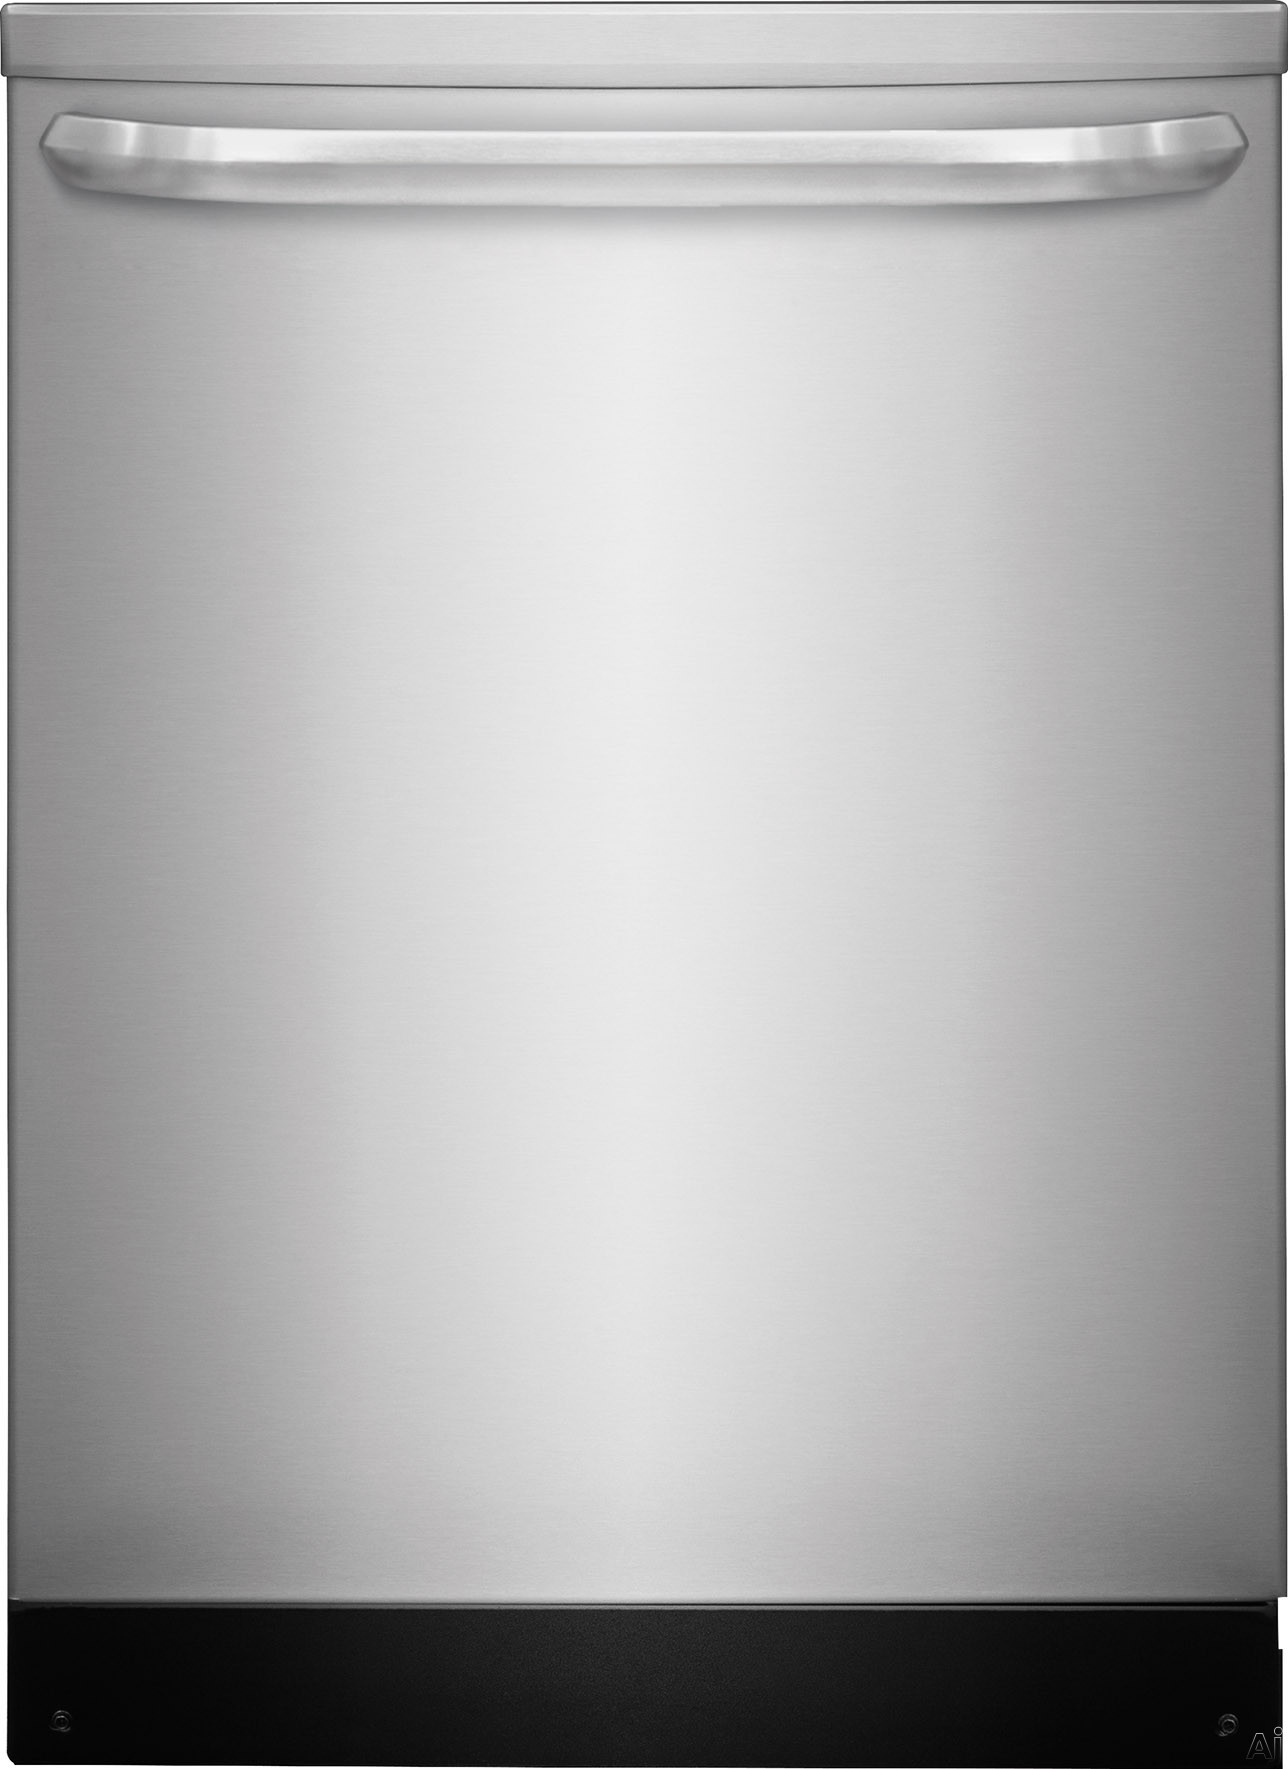 Frigidaire FFID2423RS Fully Integrated Dishwasher with 4 Wash Cycles, DishSense Technology, Delay Start, Sanitize Option, 12 Place Setting Capacity and Energy Star Certification FFID2423RS